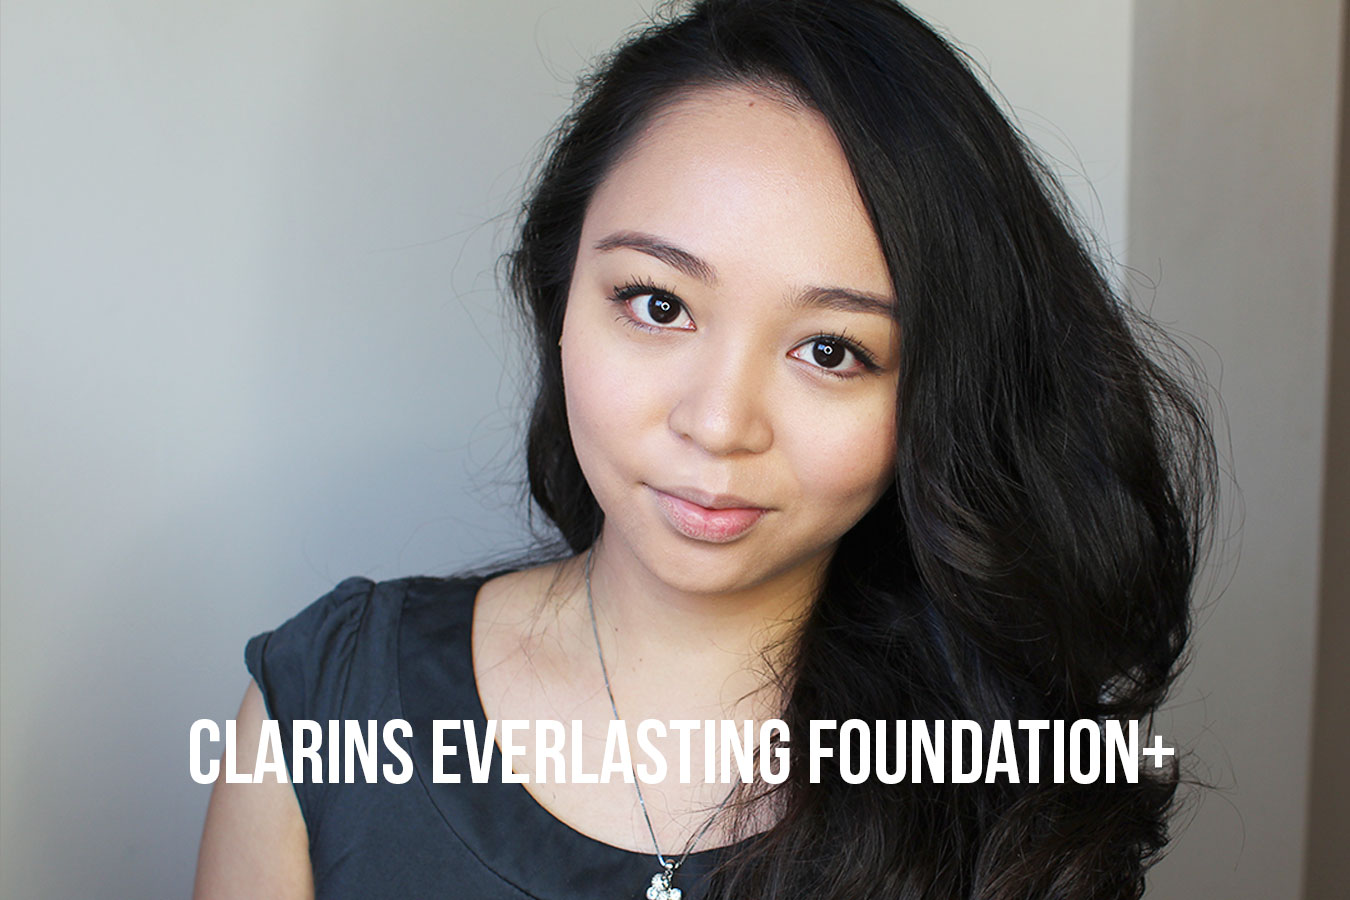 Clarins Everlasting Foundation+ Review in Amber